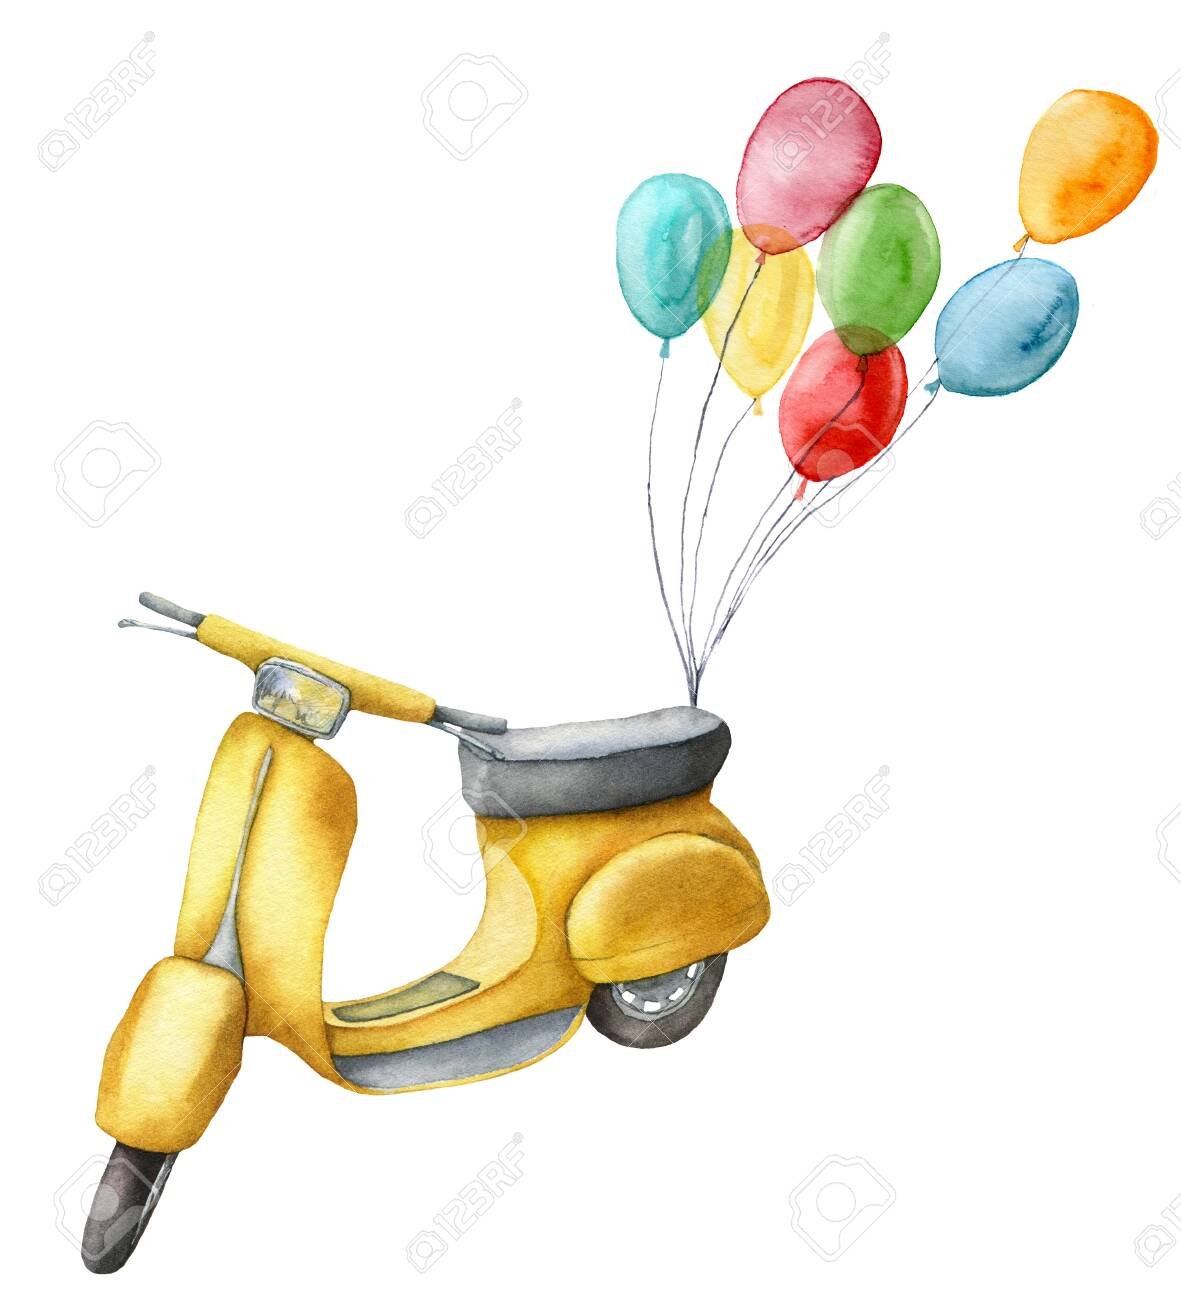 Watercolor Card With Yellow Scooter And Air Balloons Hand Painted 1181x1300